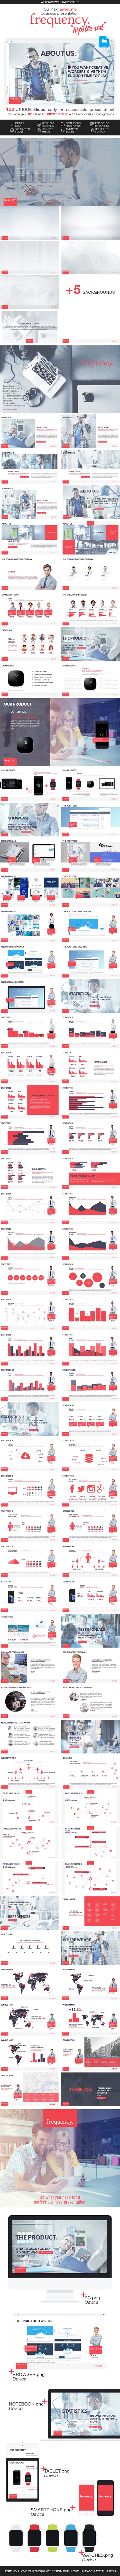 frequency // 100 Keynote Slides RED - Business Keynote Templates